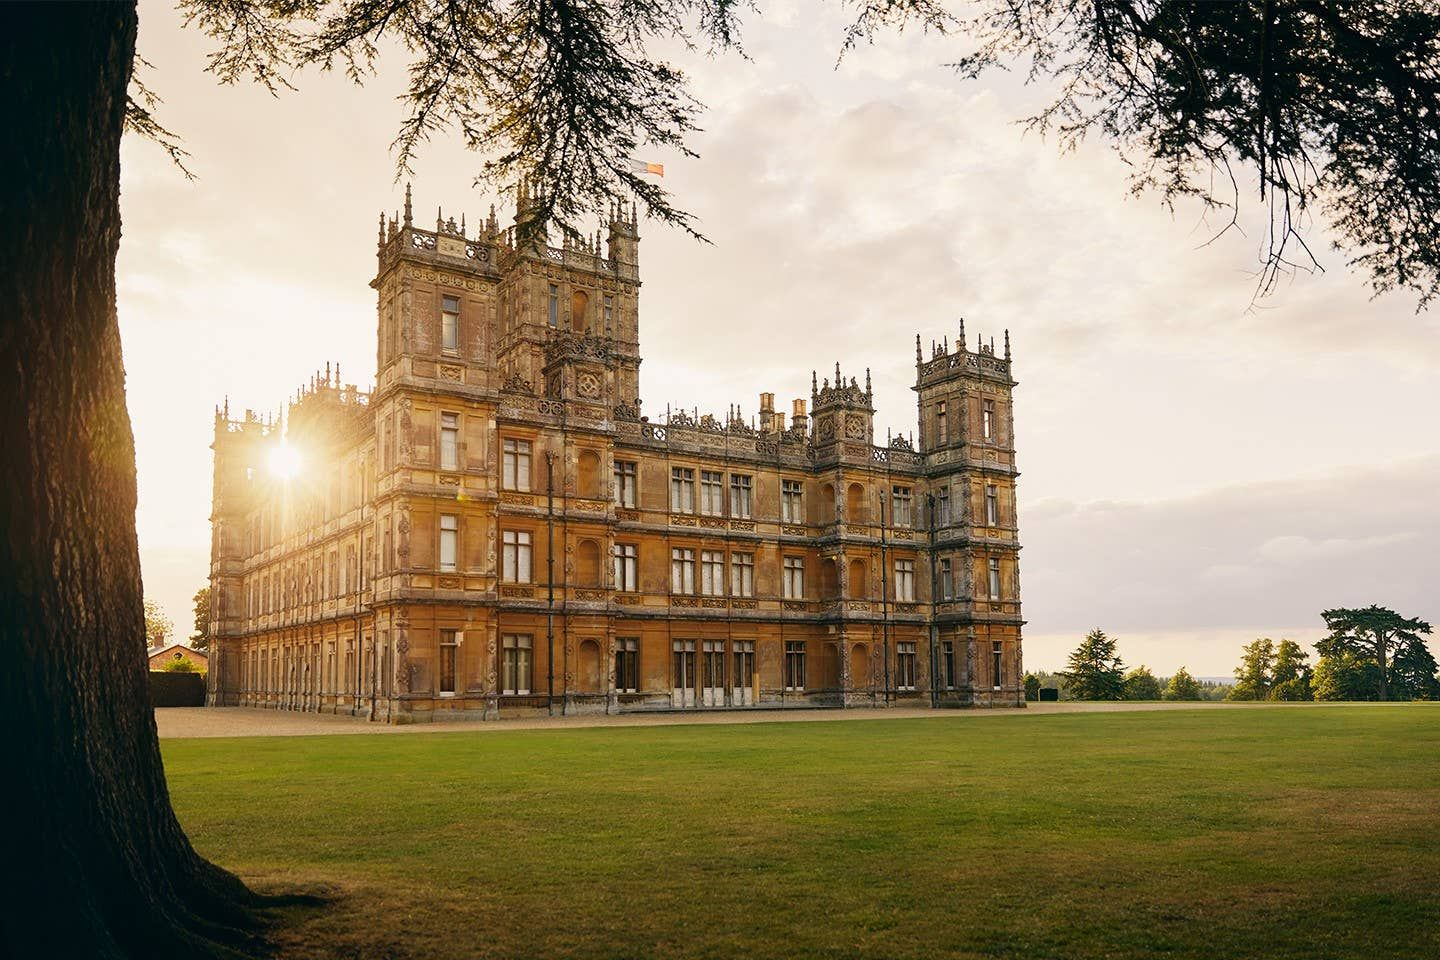 The Real Downton Abbey Is On Airbnb And You Can Stay There For Under $200 A Night